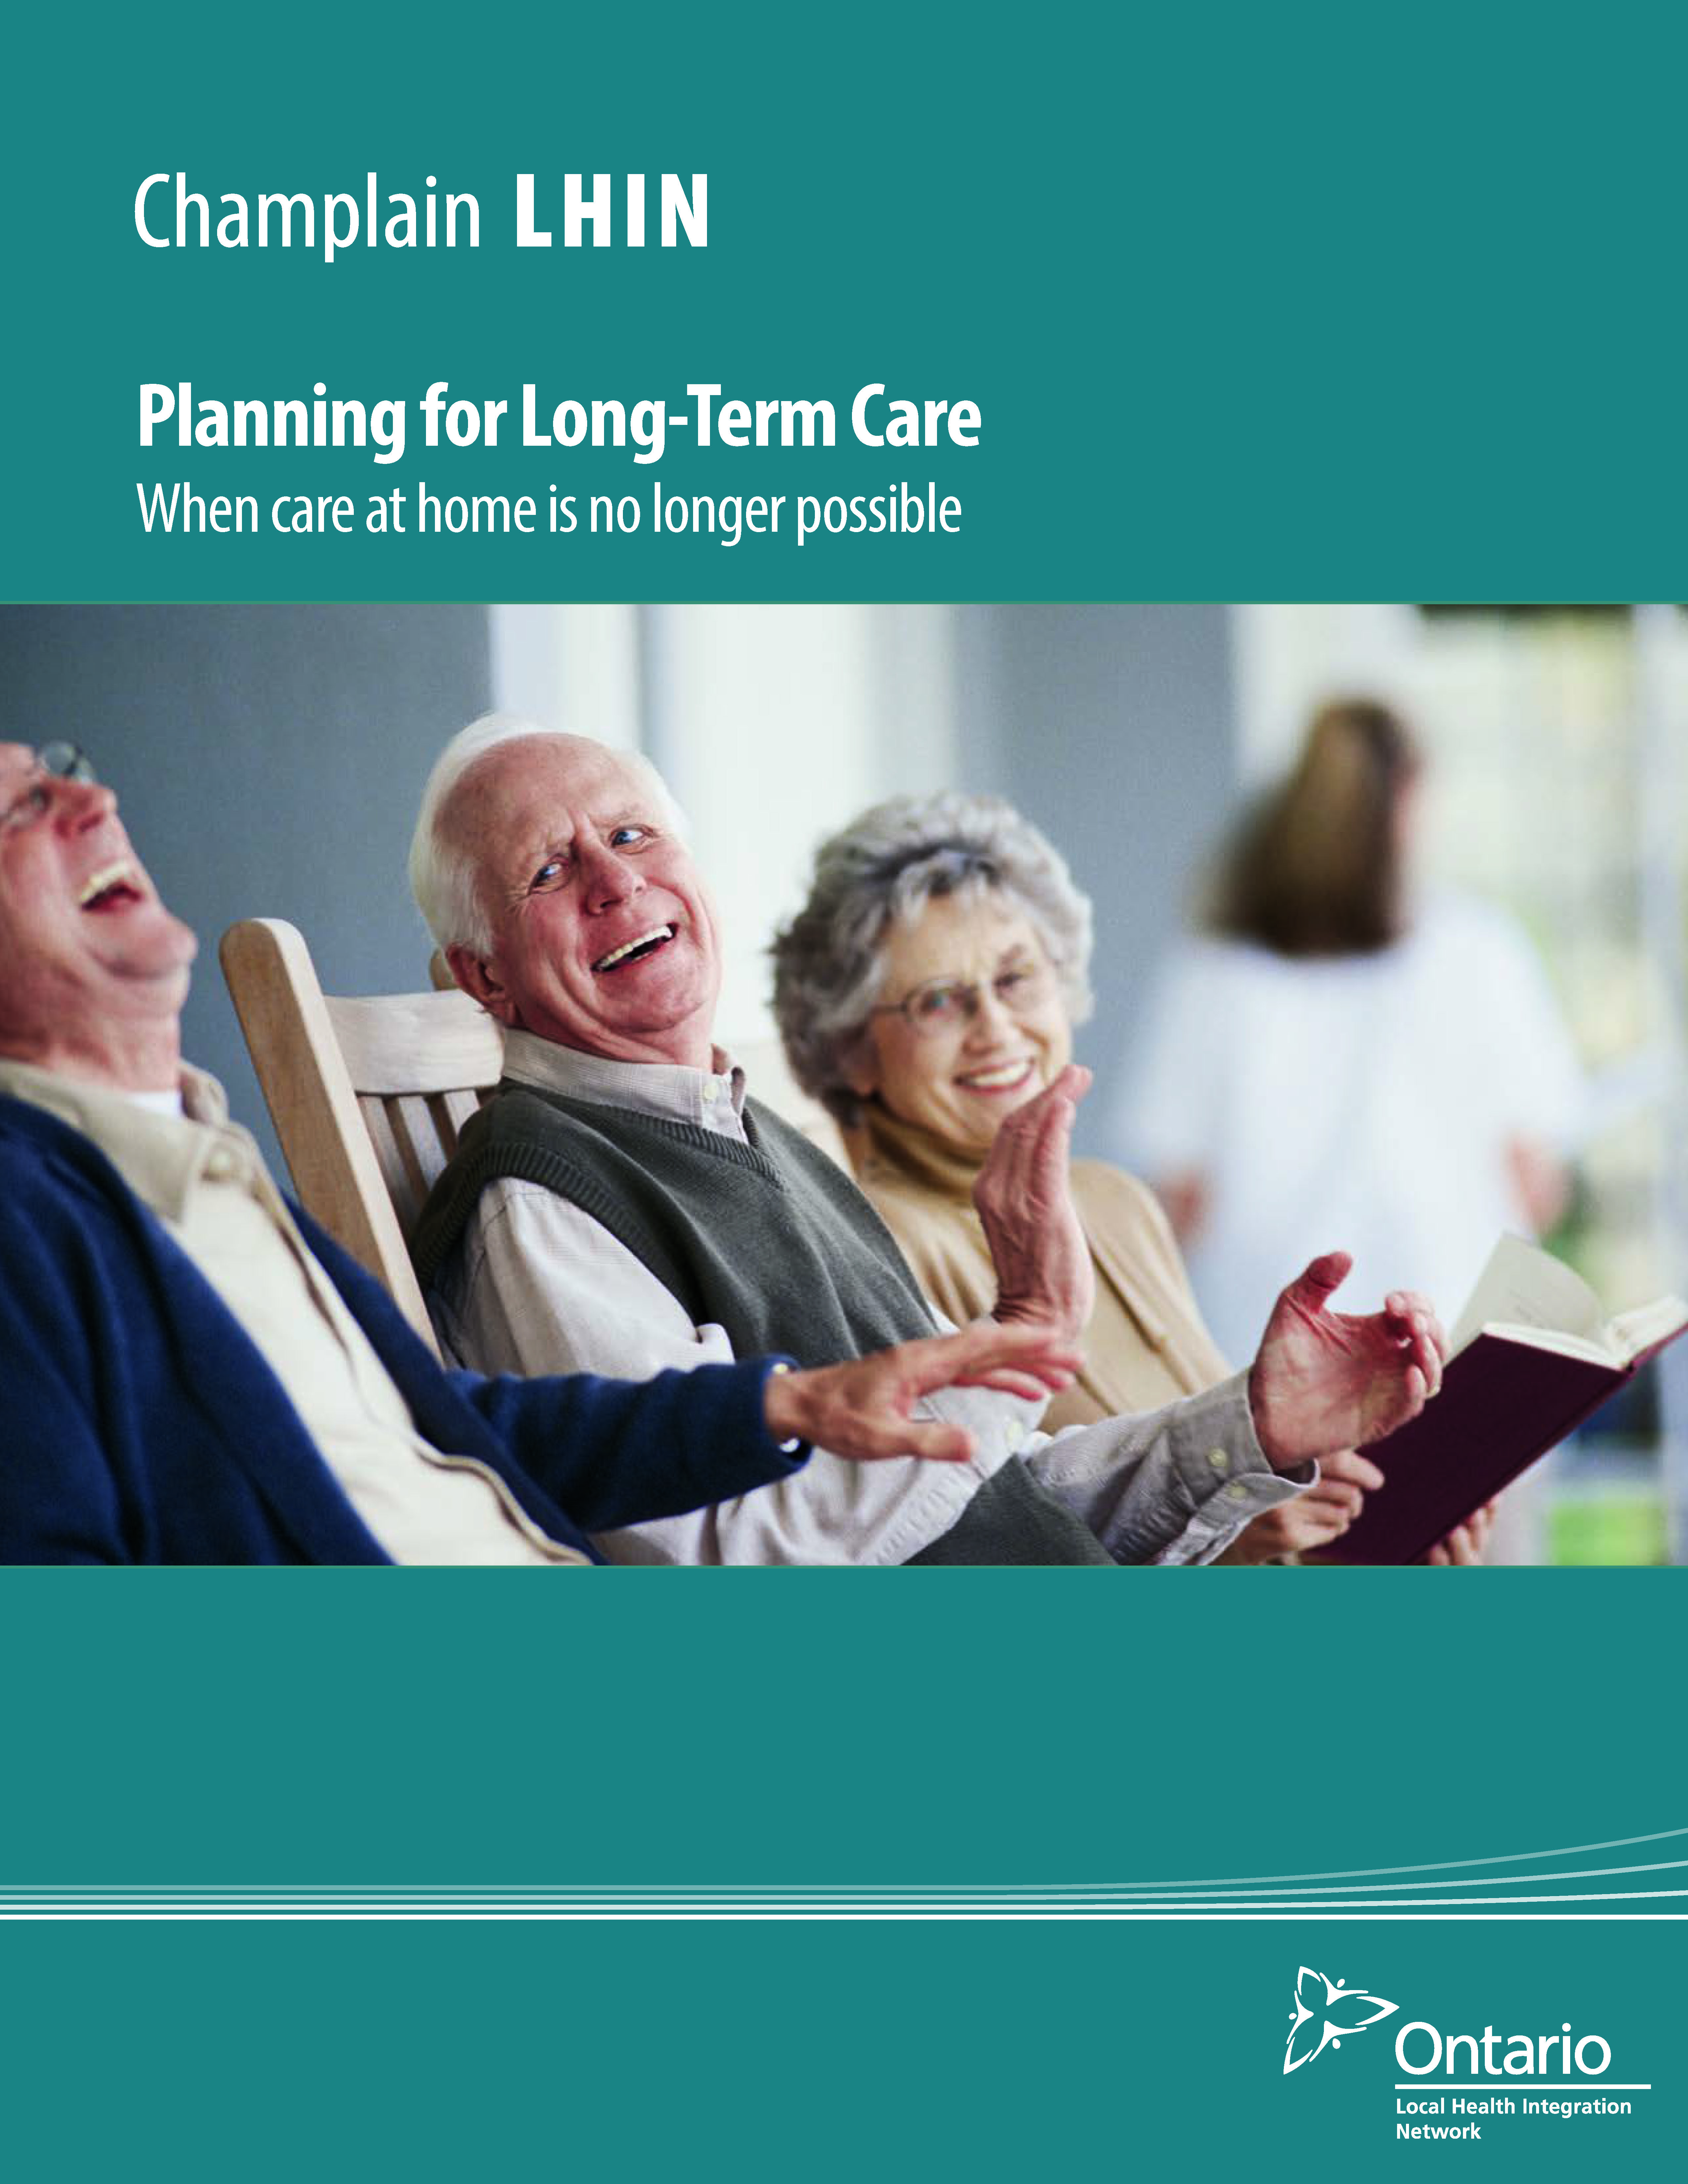 Cover of Planning for Long-Term Care brochure